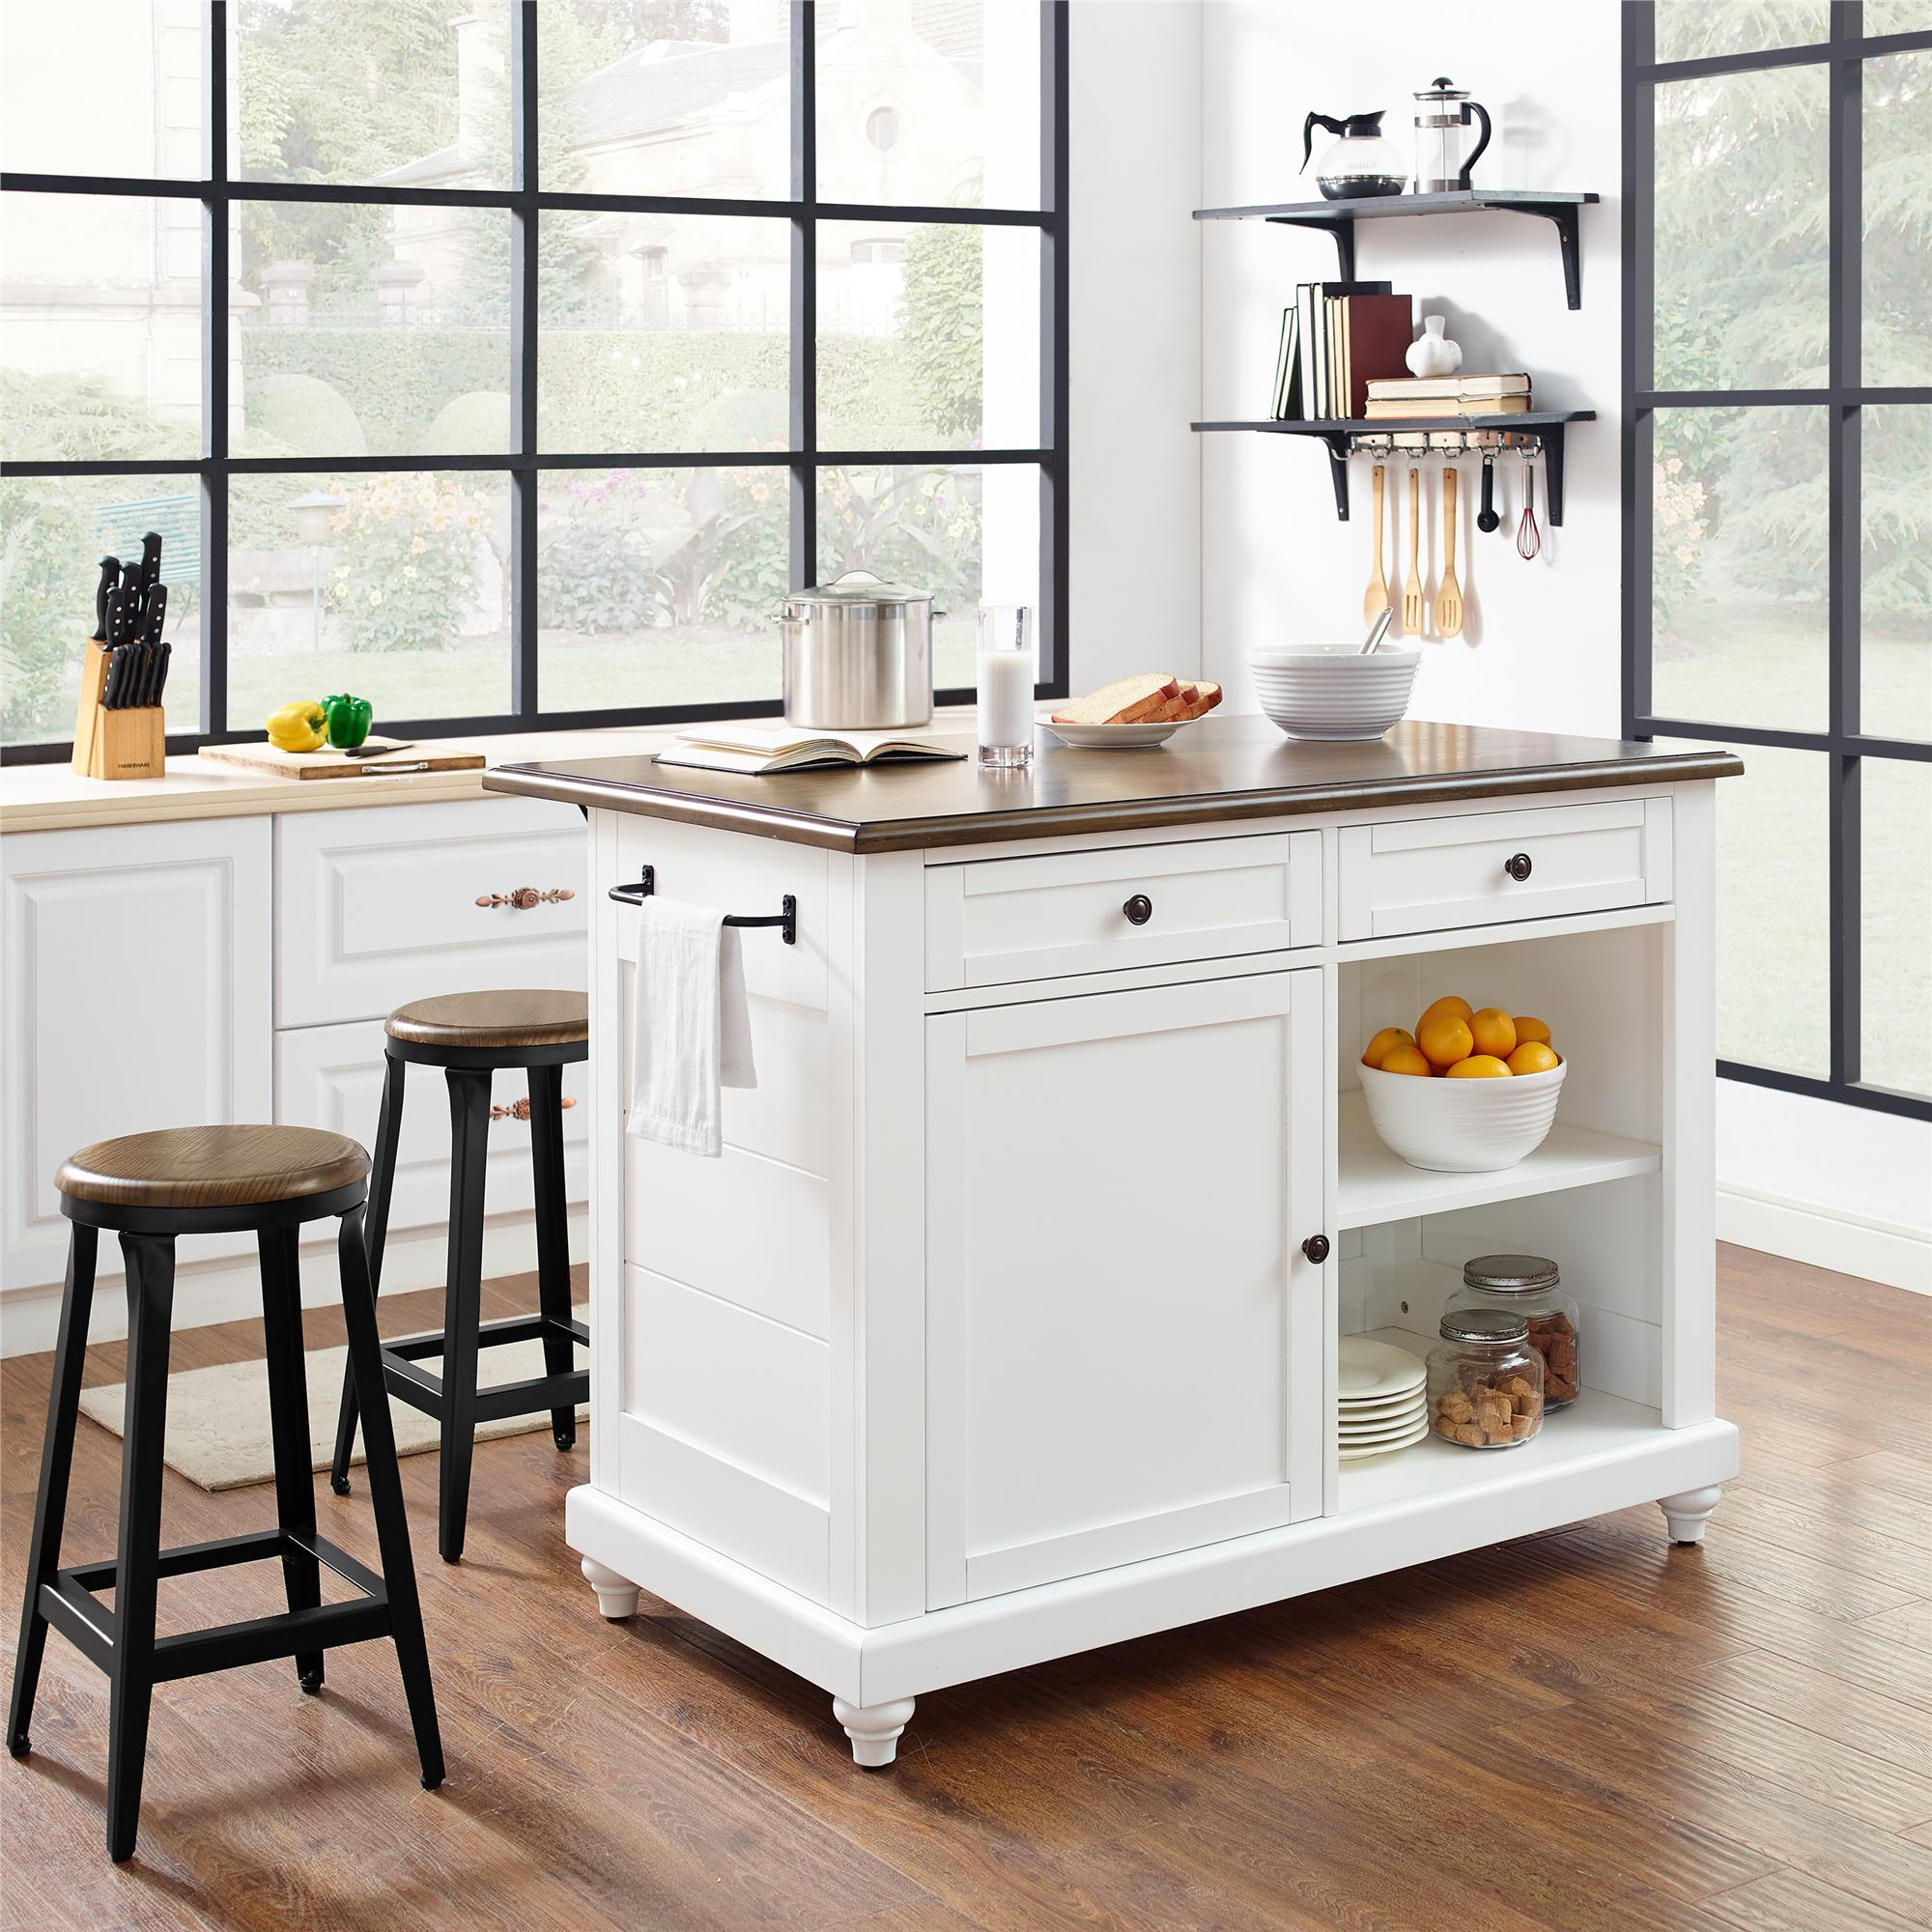 Stools Kitchen Islands Dorel Living Kelsey Kitchen Island With 2 Stools White Walmart